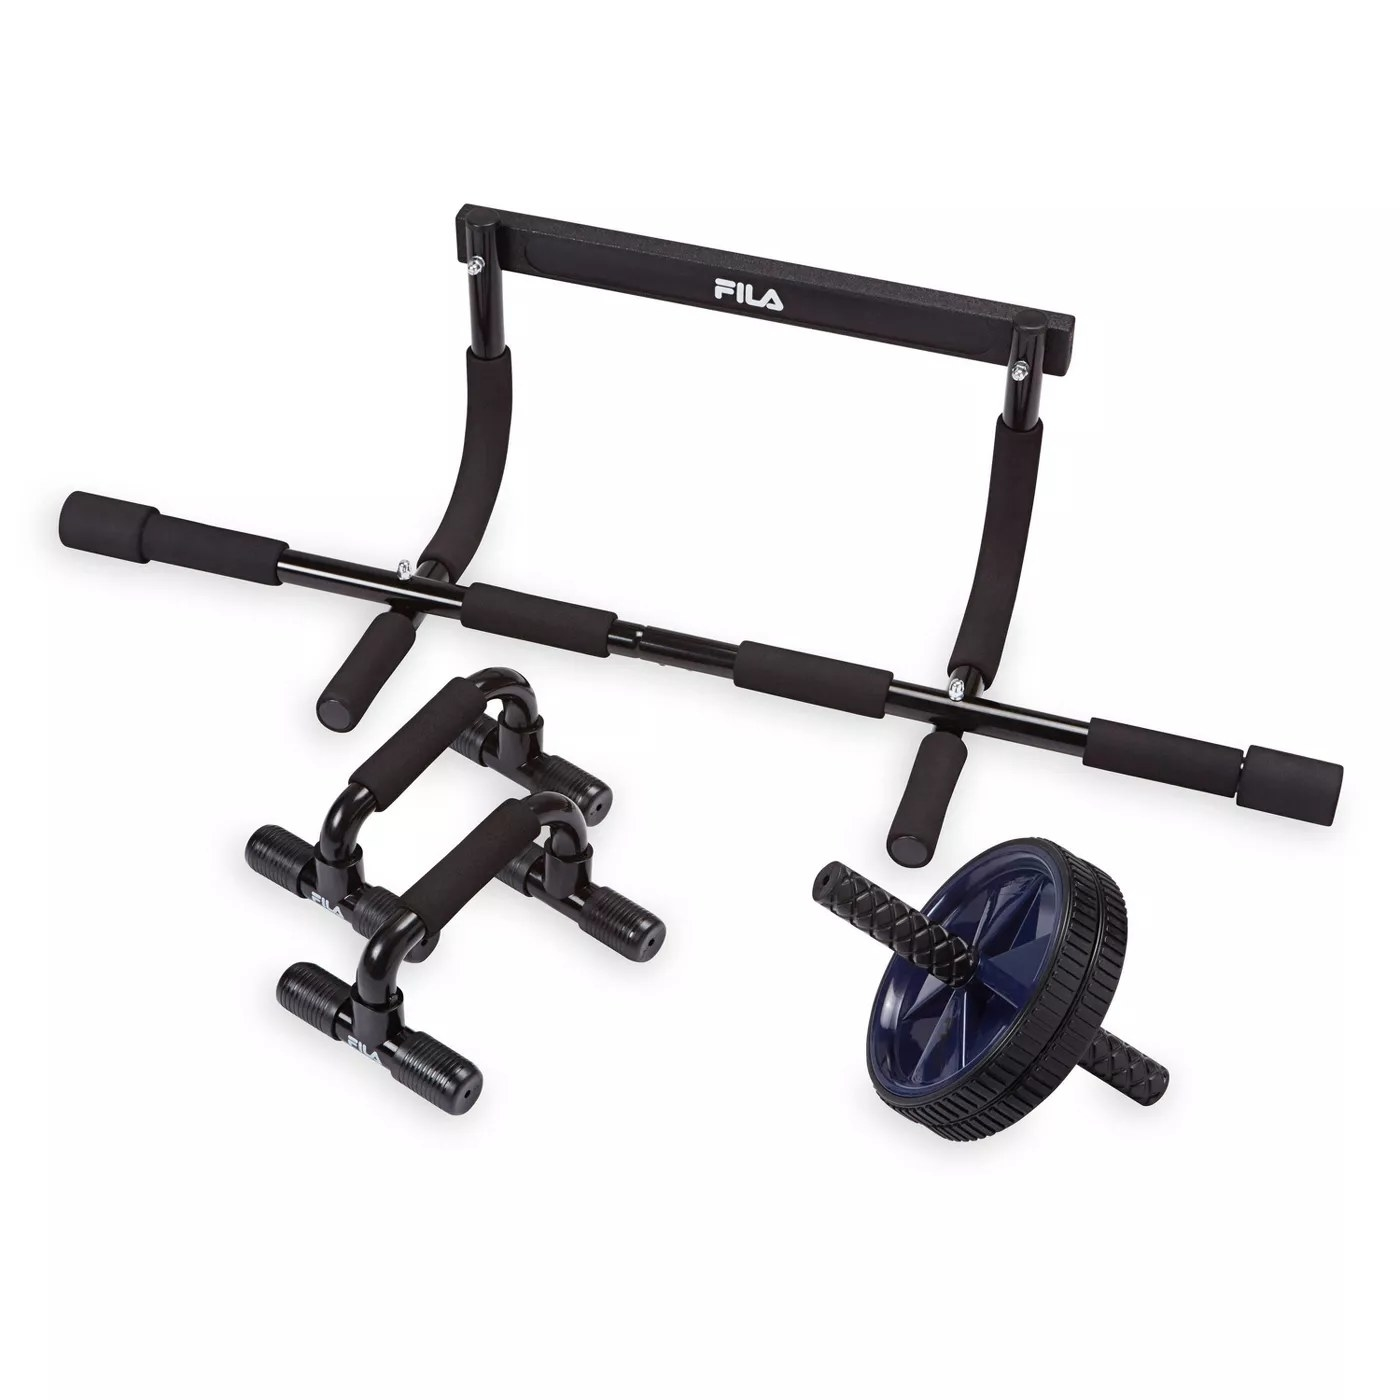 A set of equipment with pushup handles, a roller, and a bar